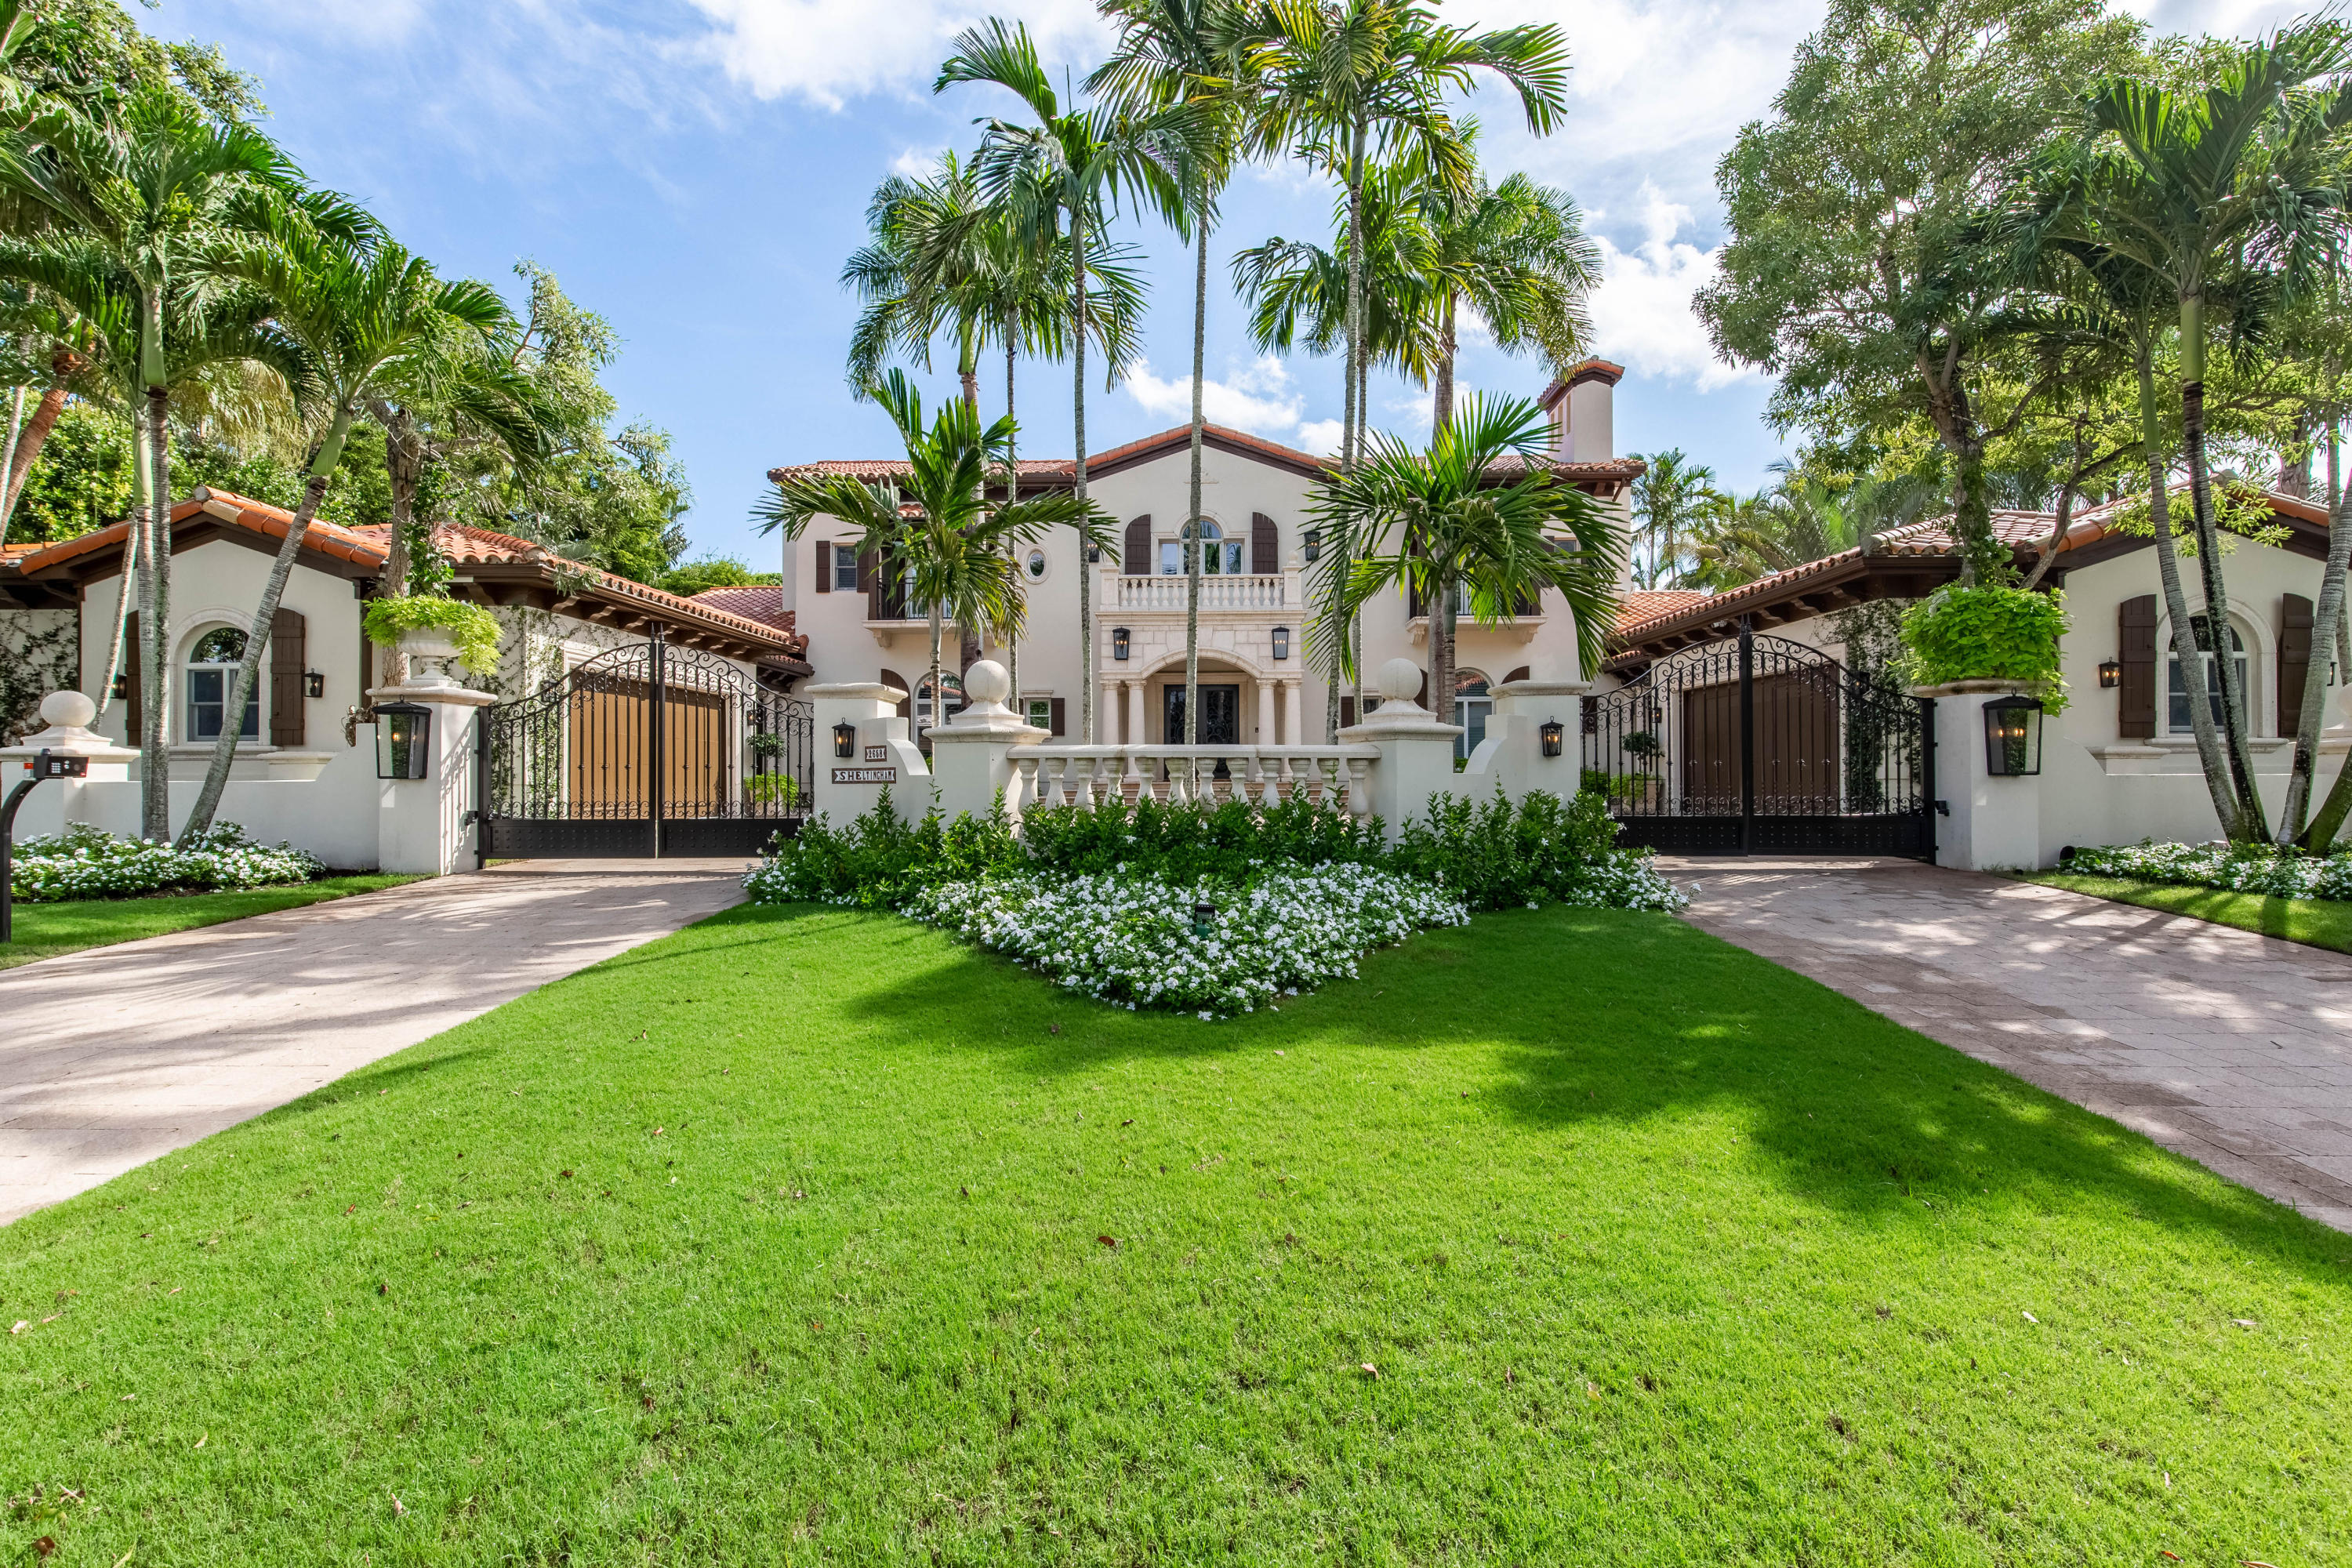 2658 Sheltingham Drive, Wellington, Florida 33414, 6 Bedrooms Bedrooms, ,7.2 BathroomsBathrooms,Single Family,For Sale,Palm Beach Polo,Sheltingham,1,RX-10660830